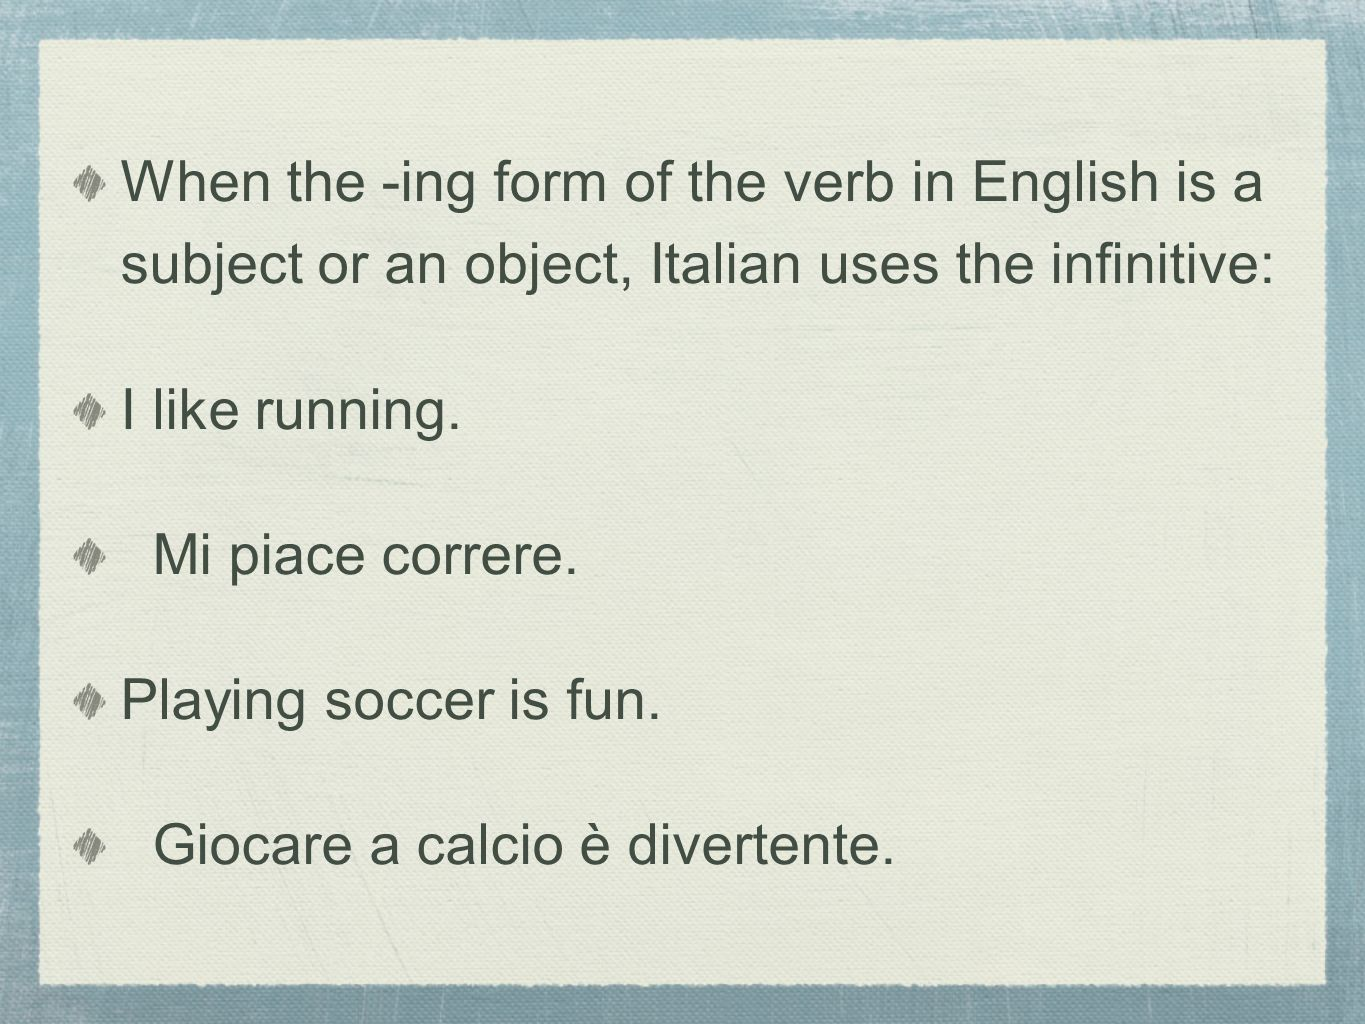 When the -ing form of the verb in English is a subject or an object, Italian uses the infinitive: